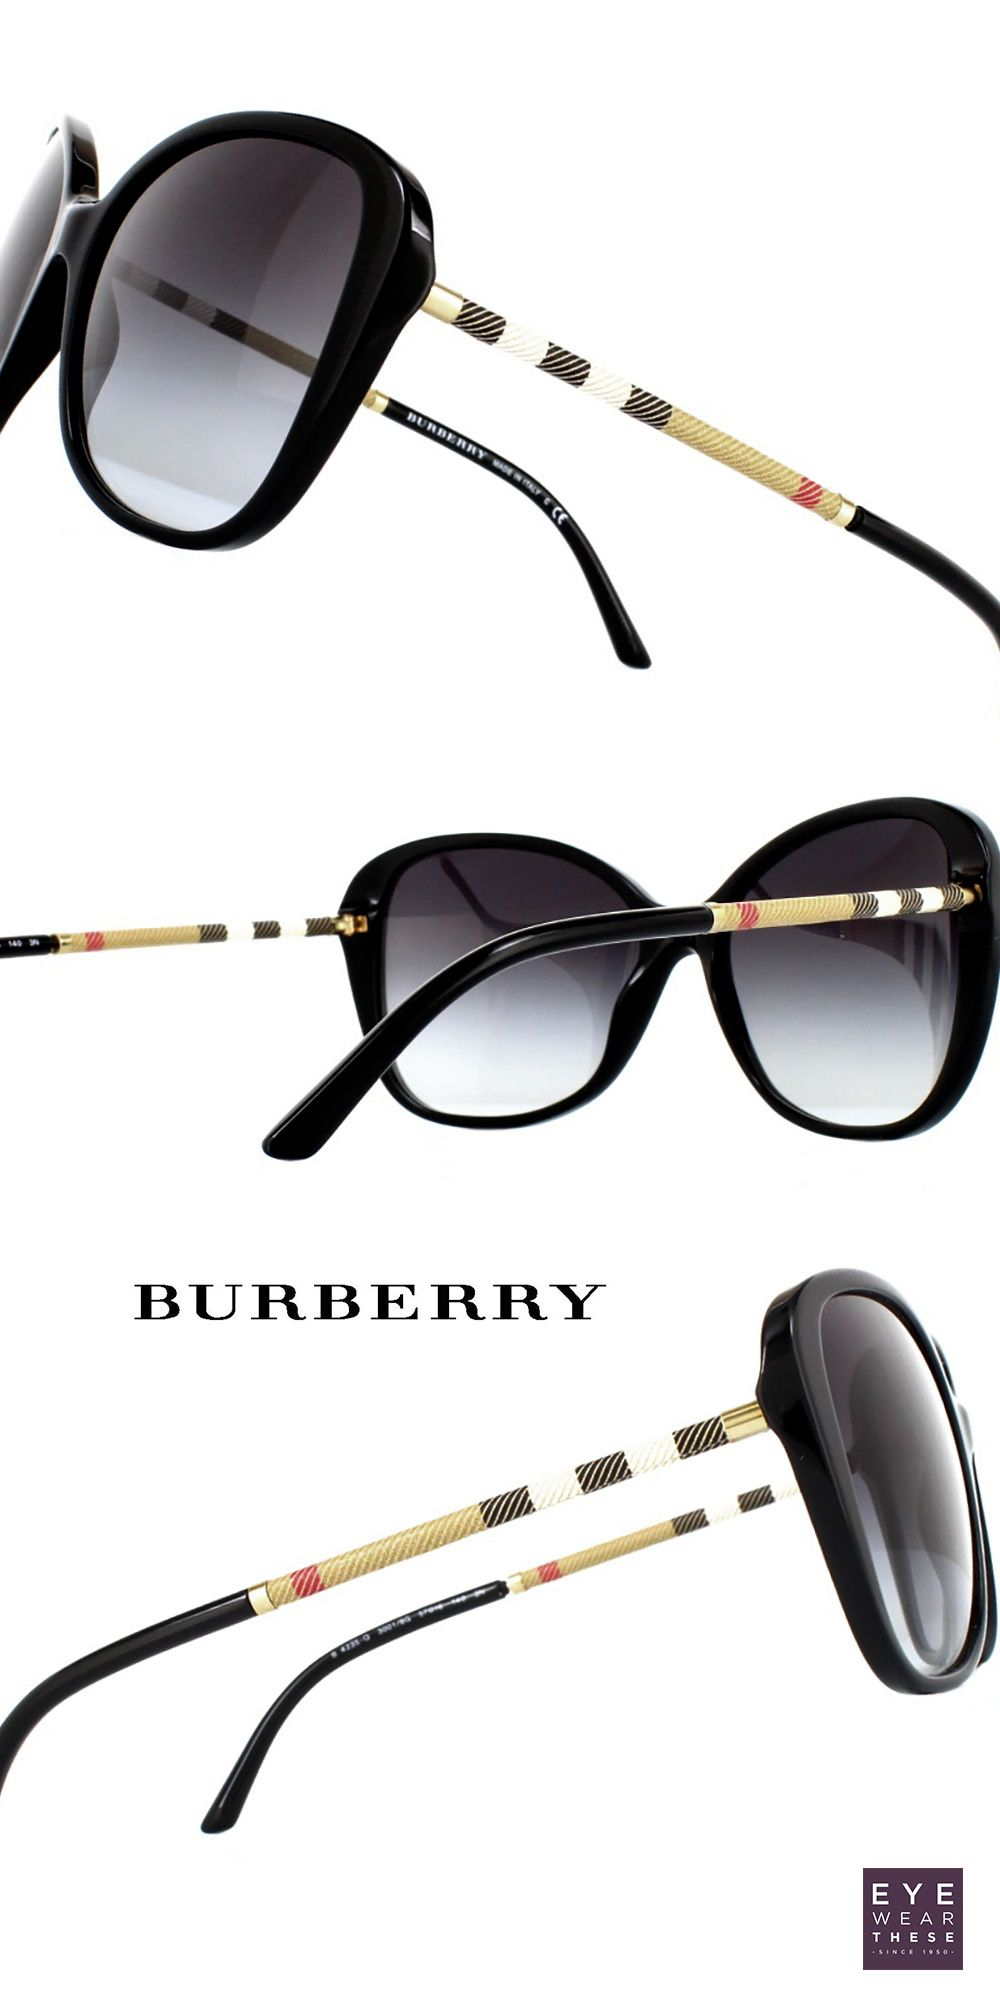 d53675dec3fa Premium Burberry sunglasses for women with with beautifully wrapped leather  temples in the house check design  Burberry  fashion